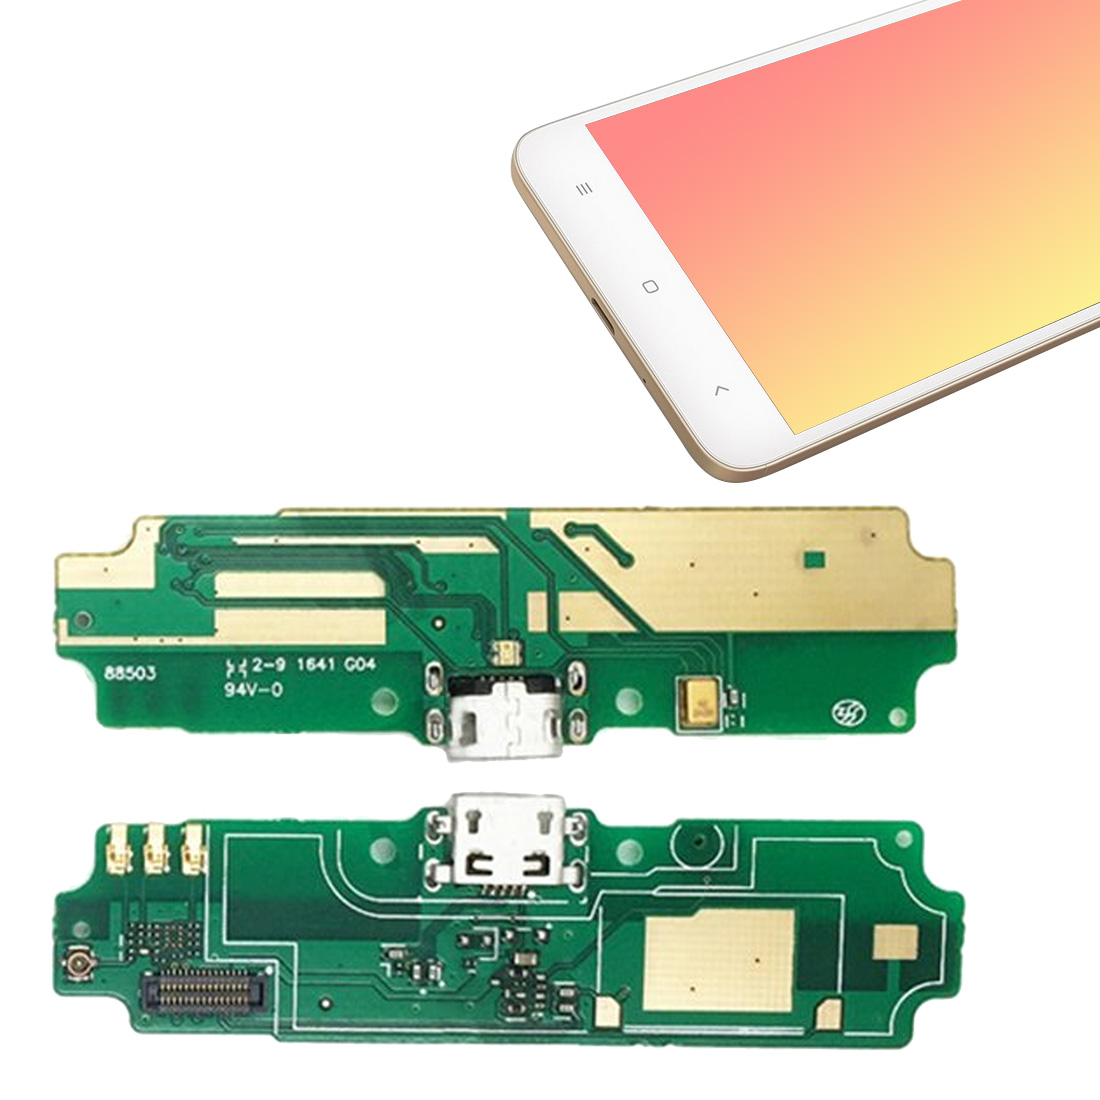 USB Charging Port Charger Board Flex Cable For Xiaomi Redmi 4A  Dock Plug Connector With Microphone Board